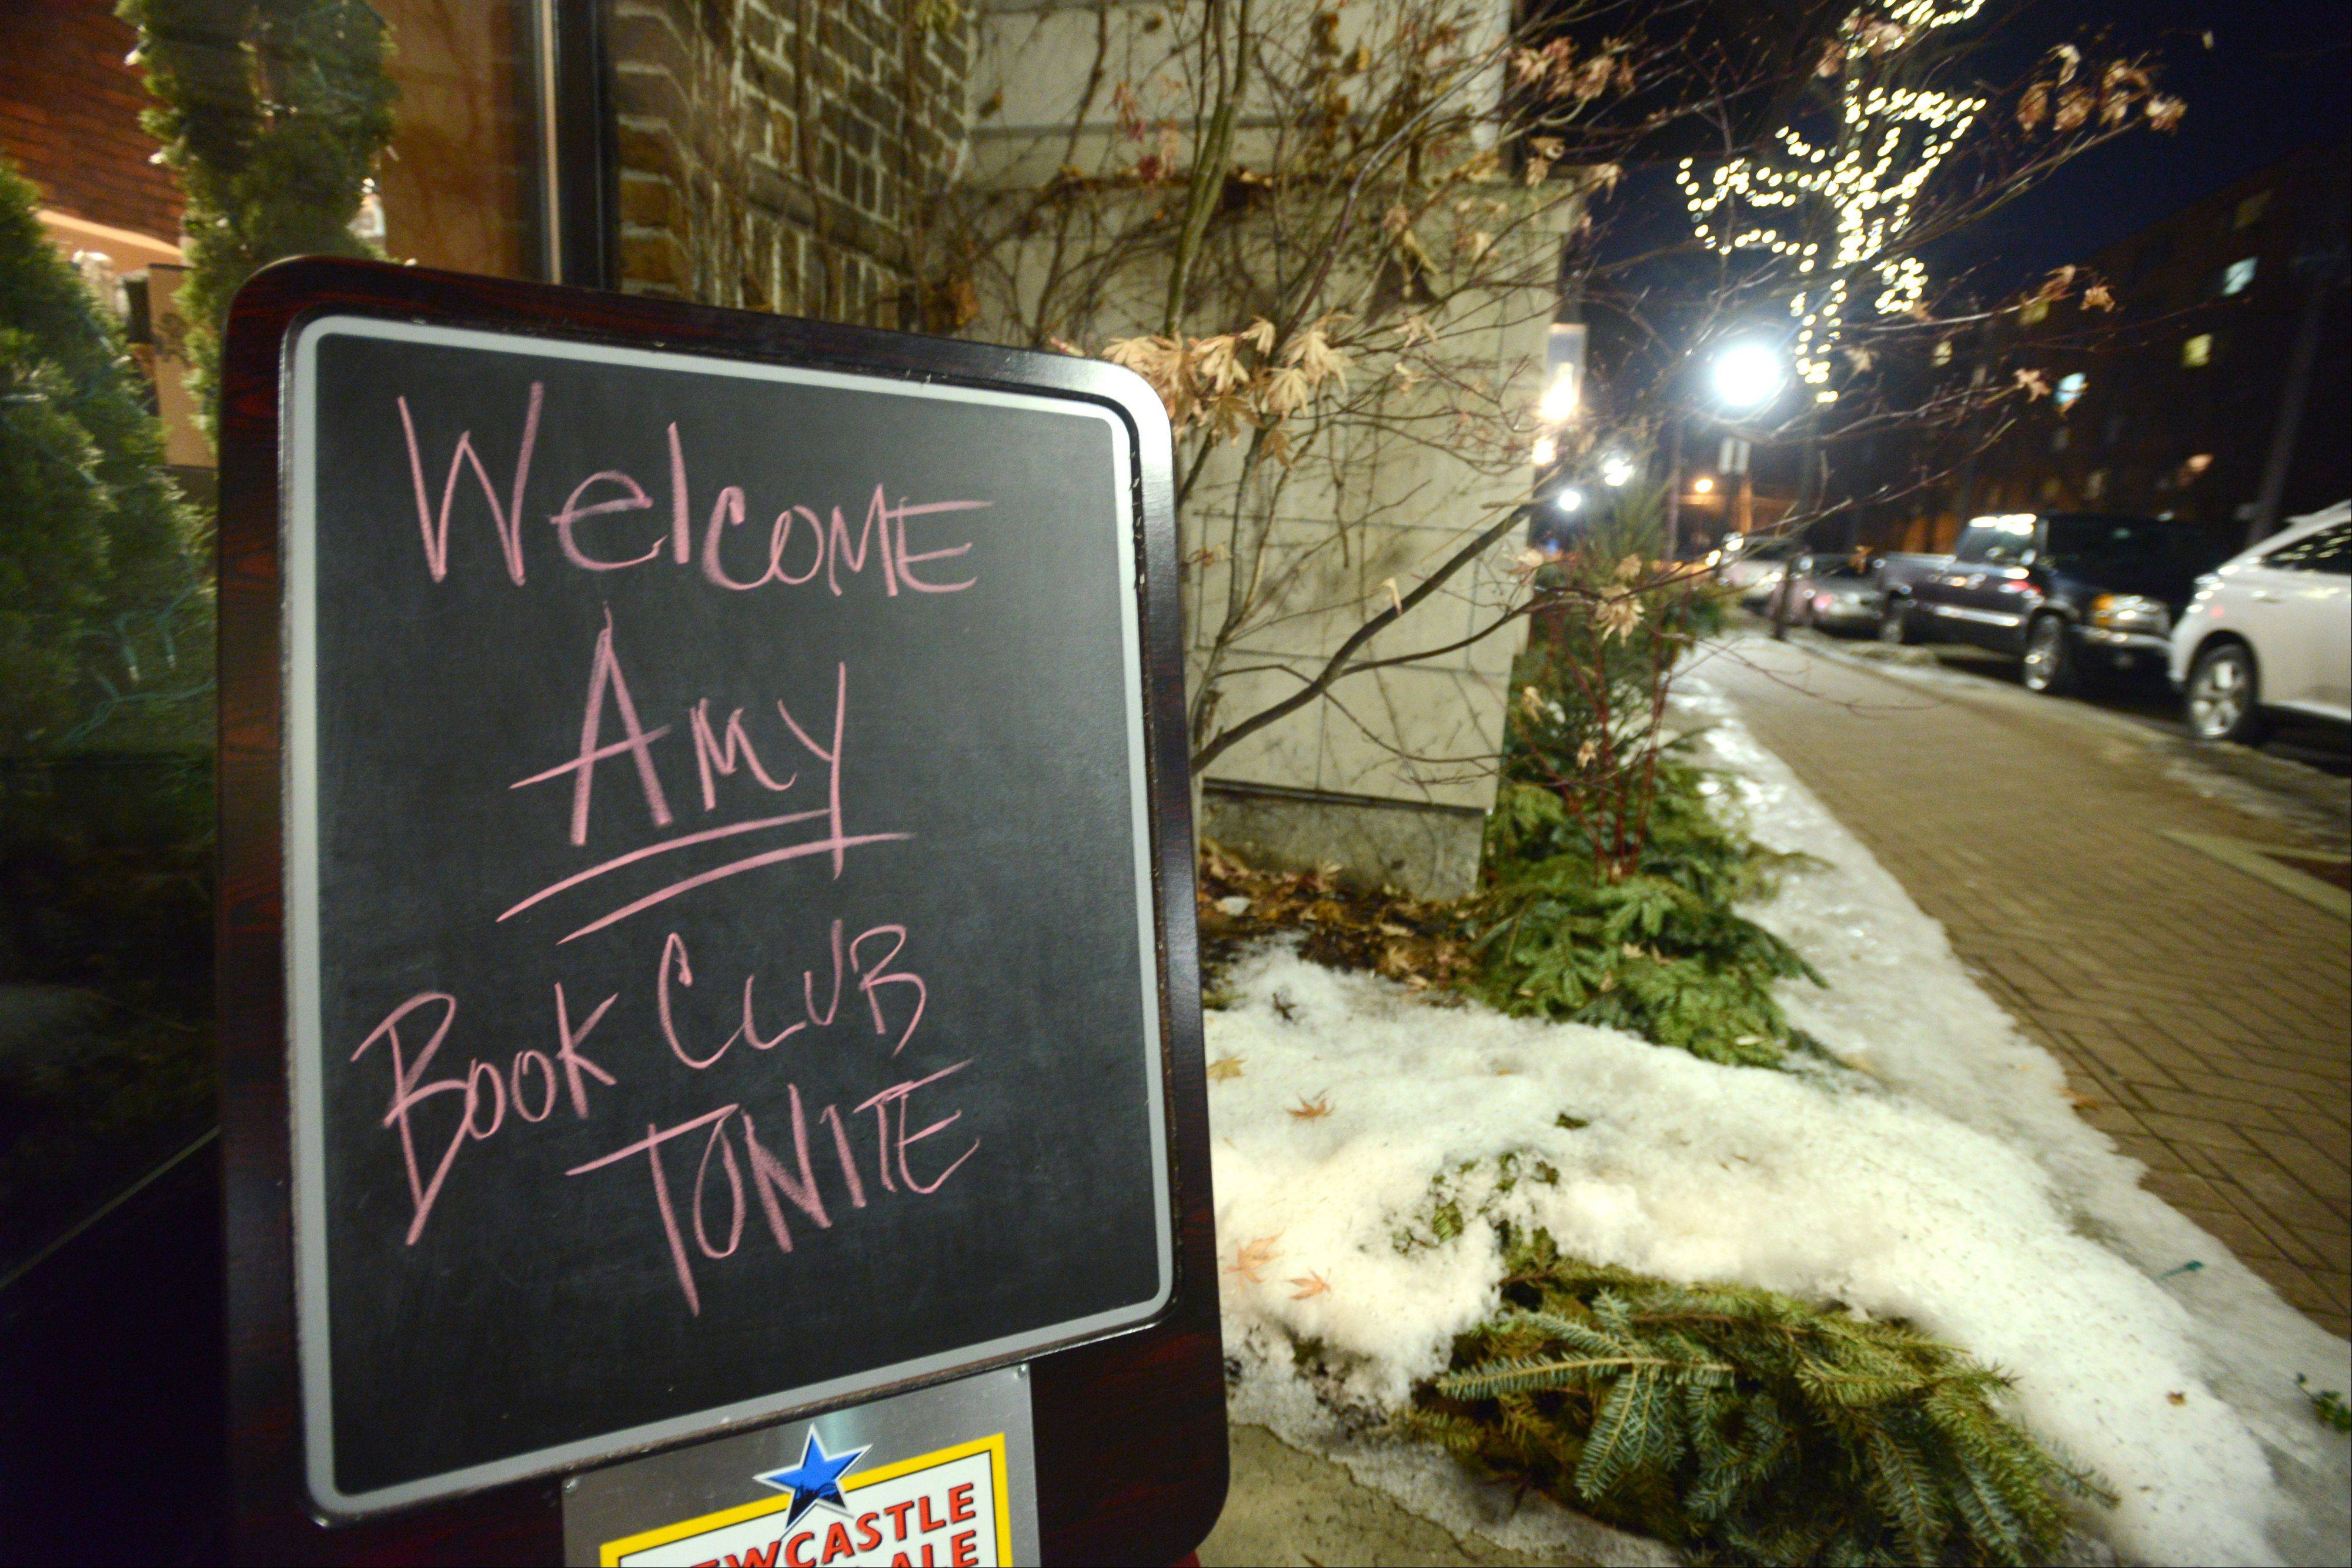 A chalkboard sign greets patrons and author Amy Gail Hansen.